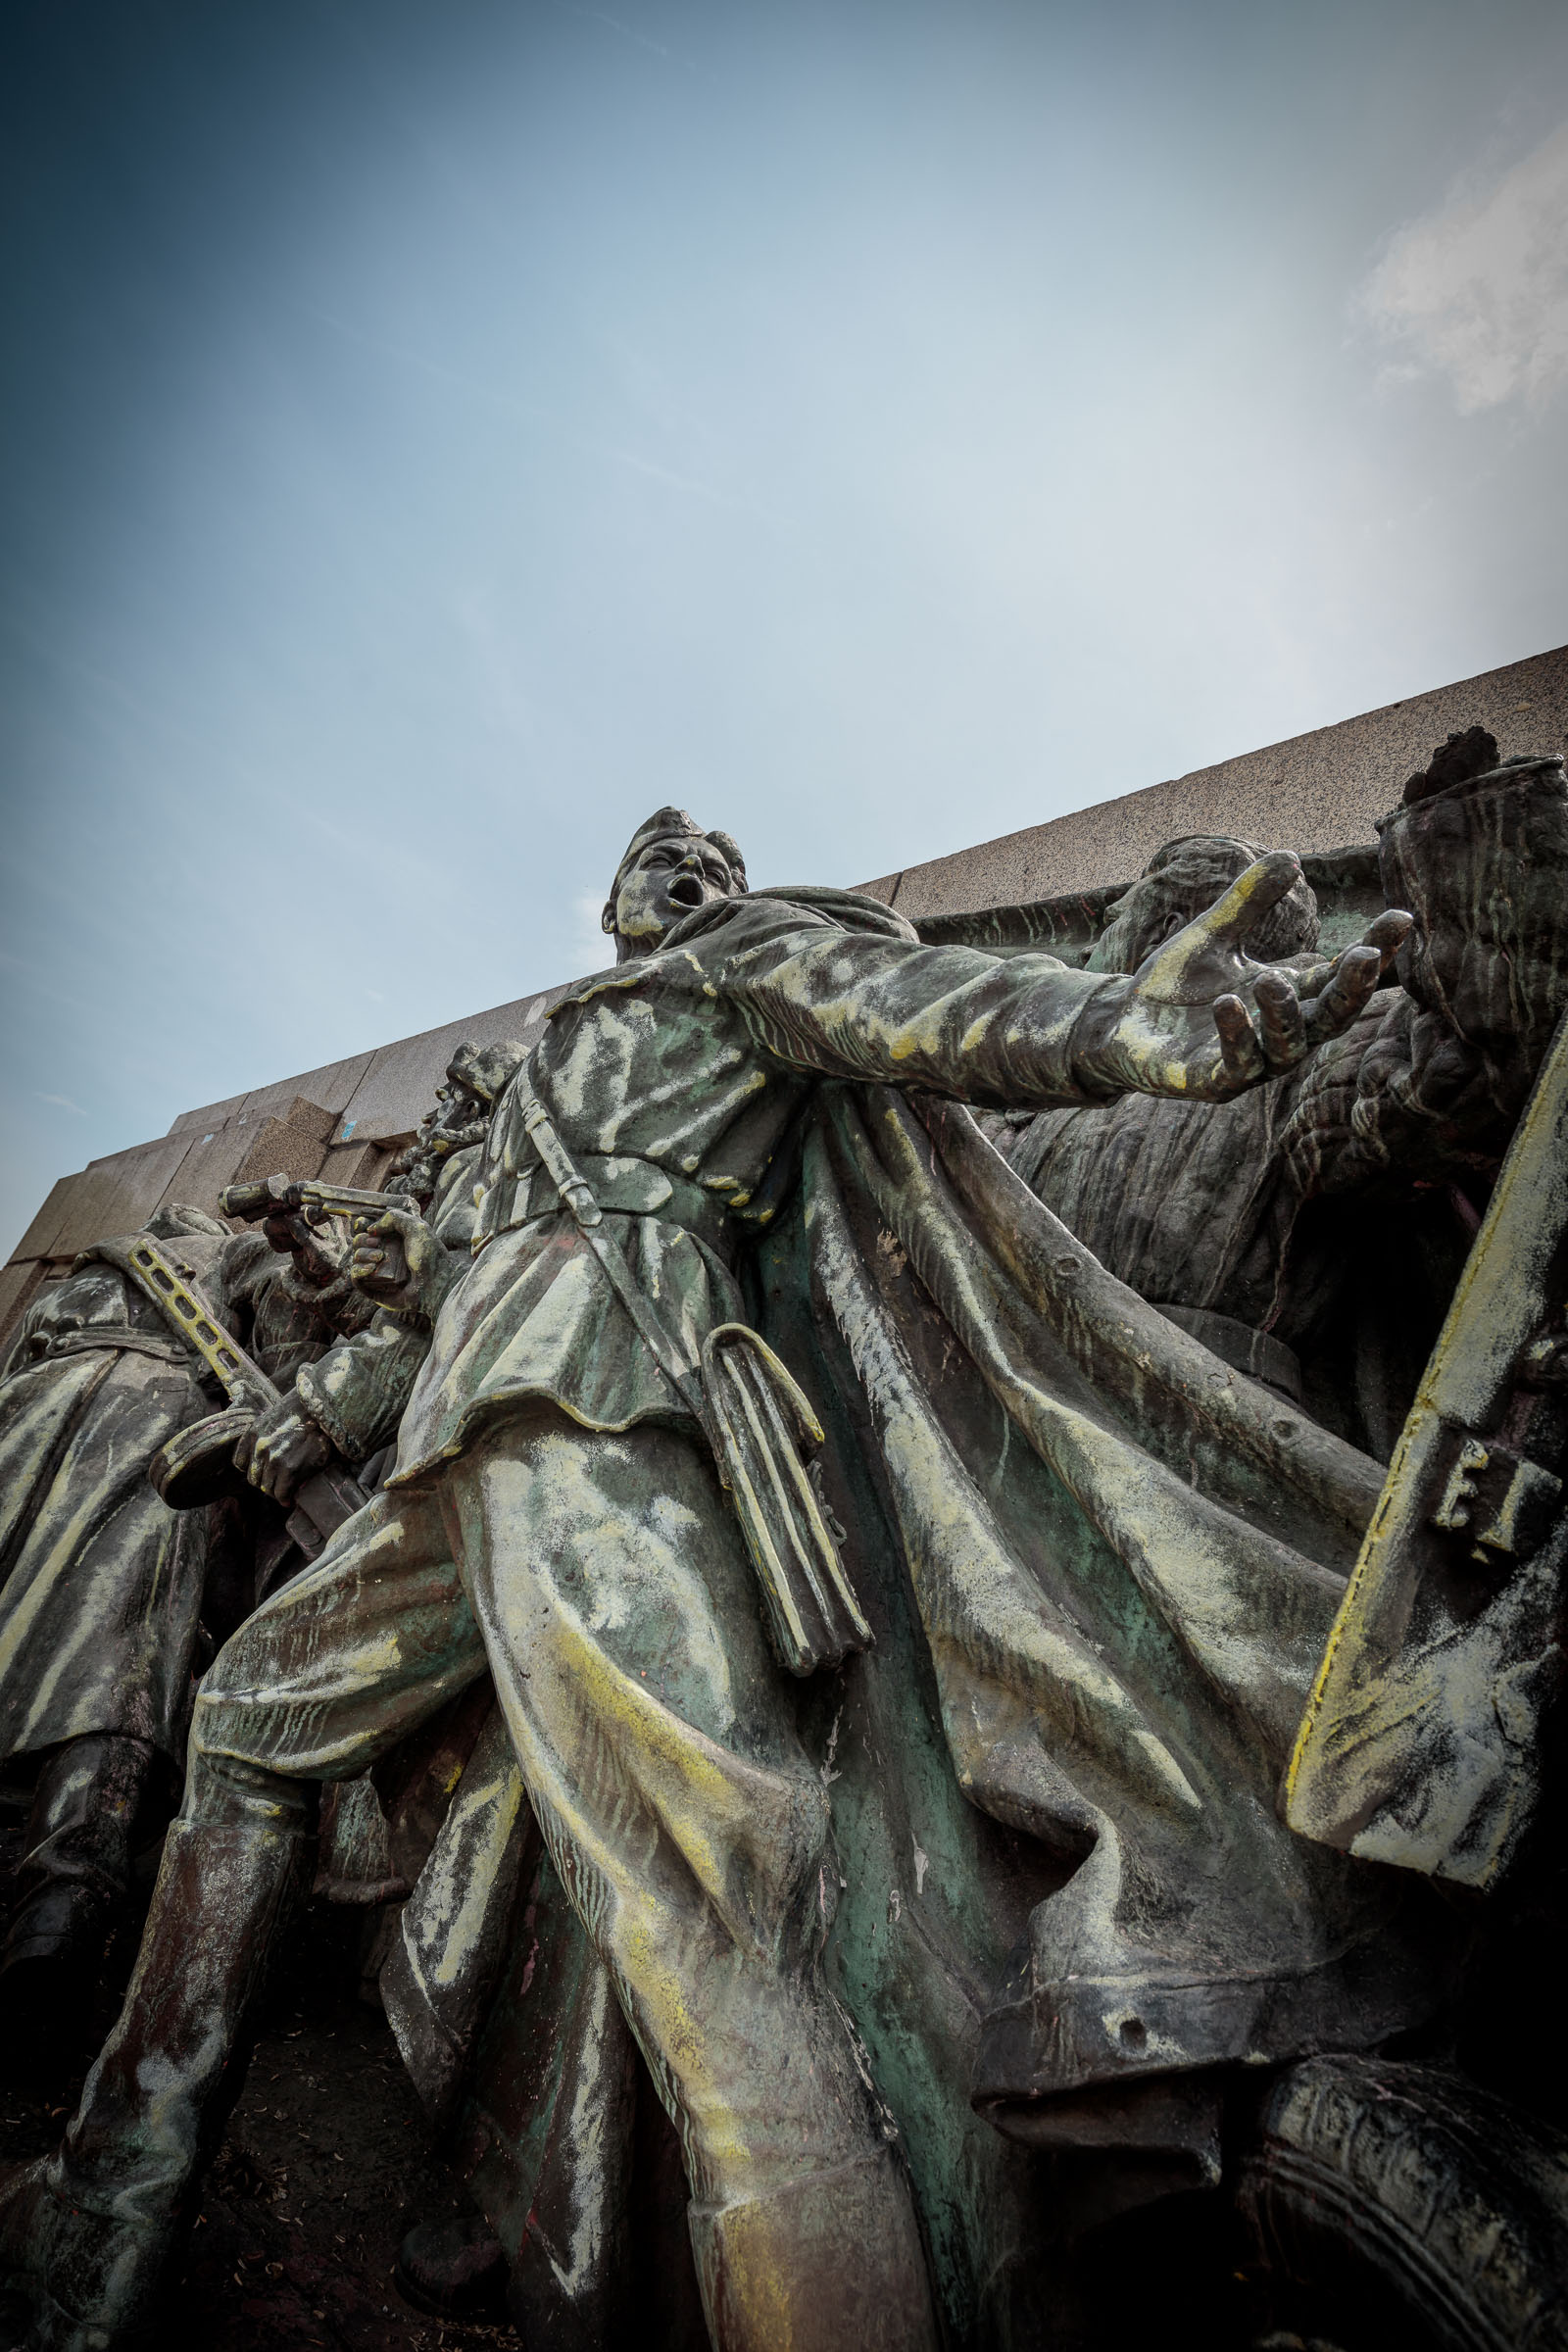 william-short-photography-sofia-monument-to-the-soviet-army-145.JPG